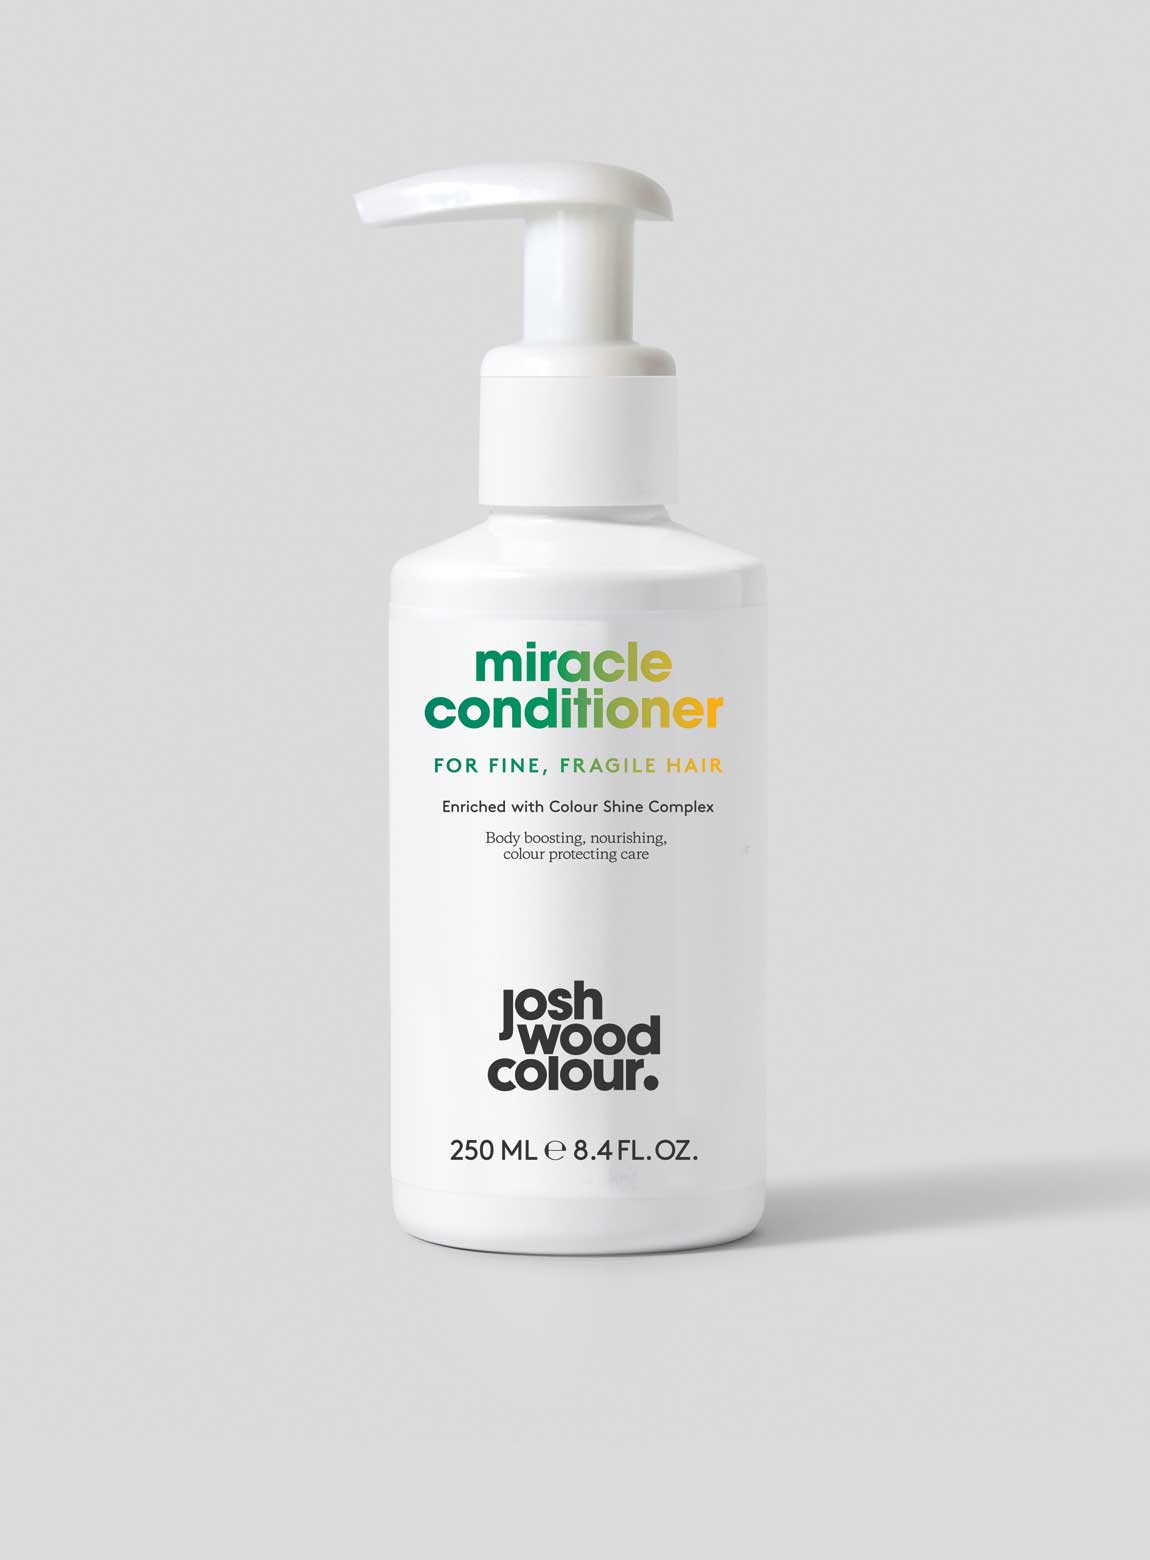 Miracle Conditioner for Fine, Fragile Hair